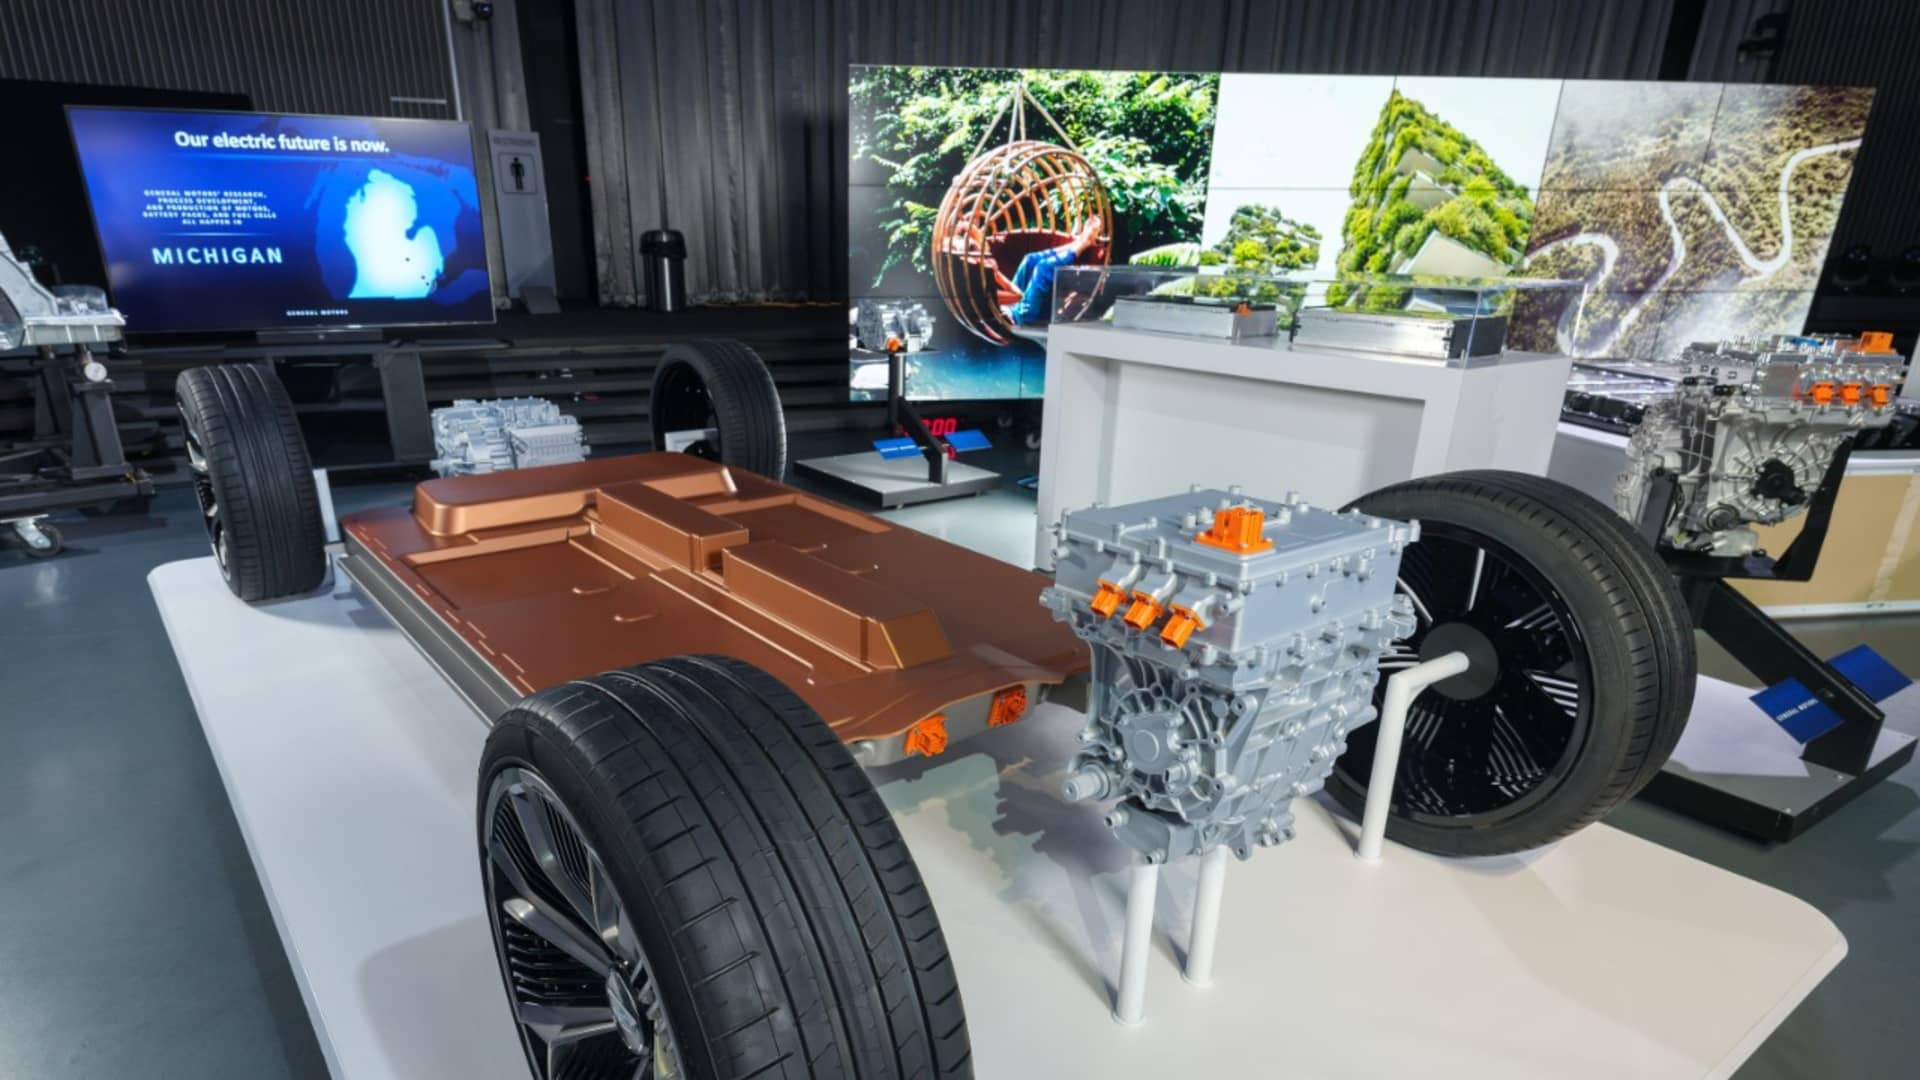 General Motors revealed its all-new modular platform and battery system, Ultium, on March 4, 2020 at its Tech Center campus in Warren, Michigan.